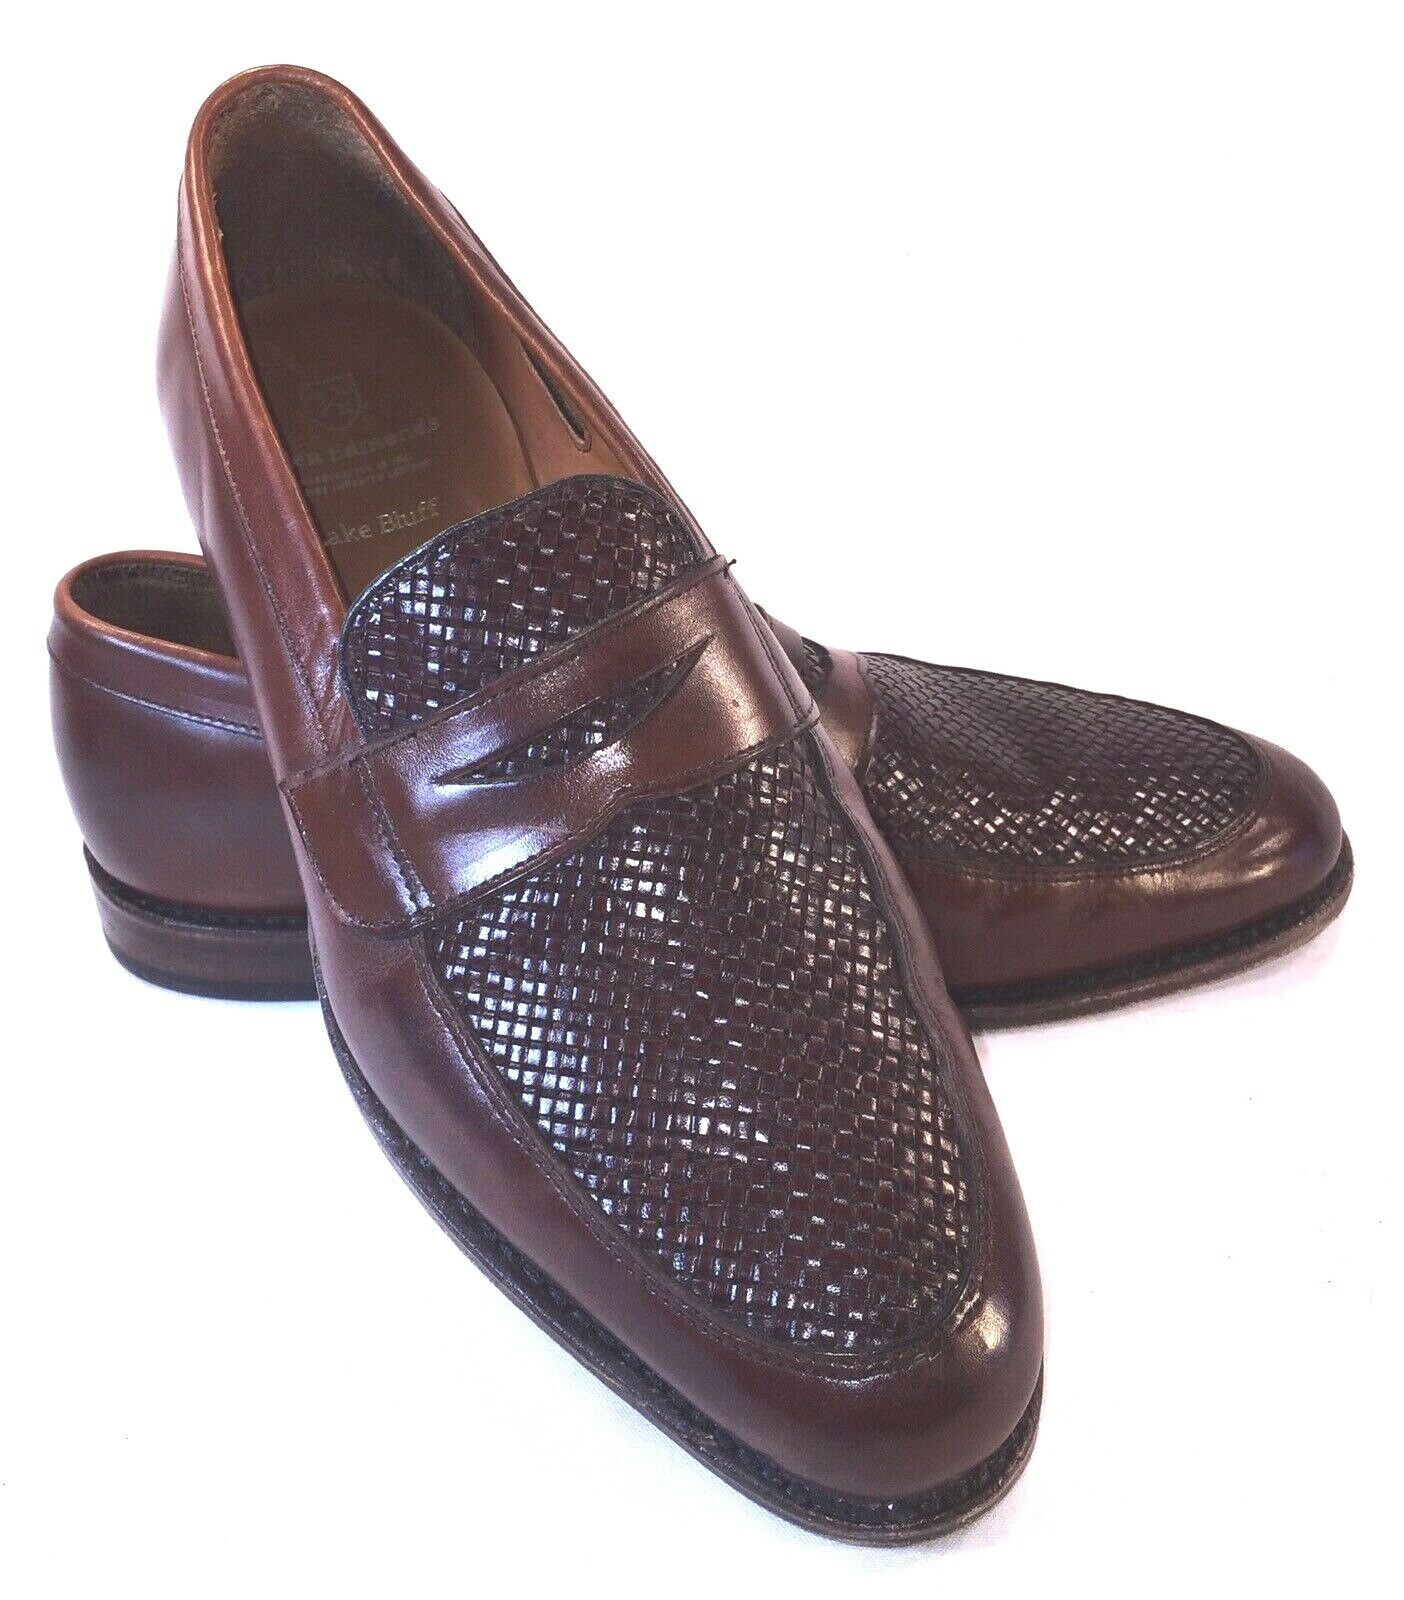 Allen Edmonds Brown Lake blueff Penny Loafers Woven Top Size 9 1 2 D Two-Tone